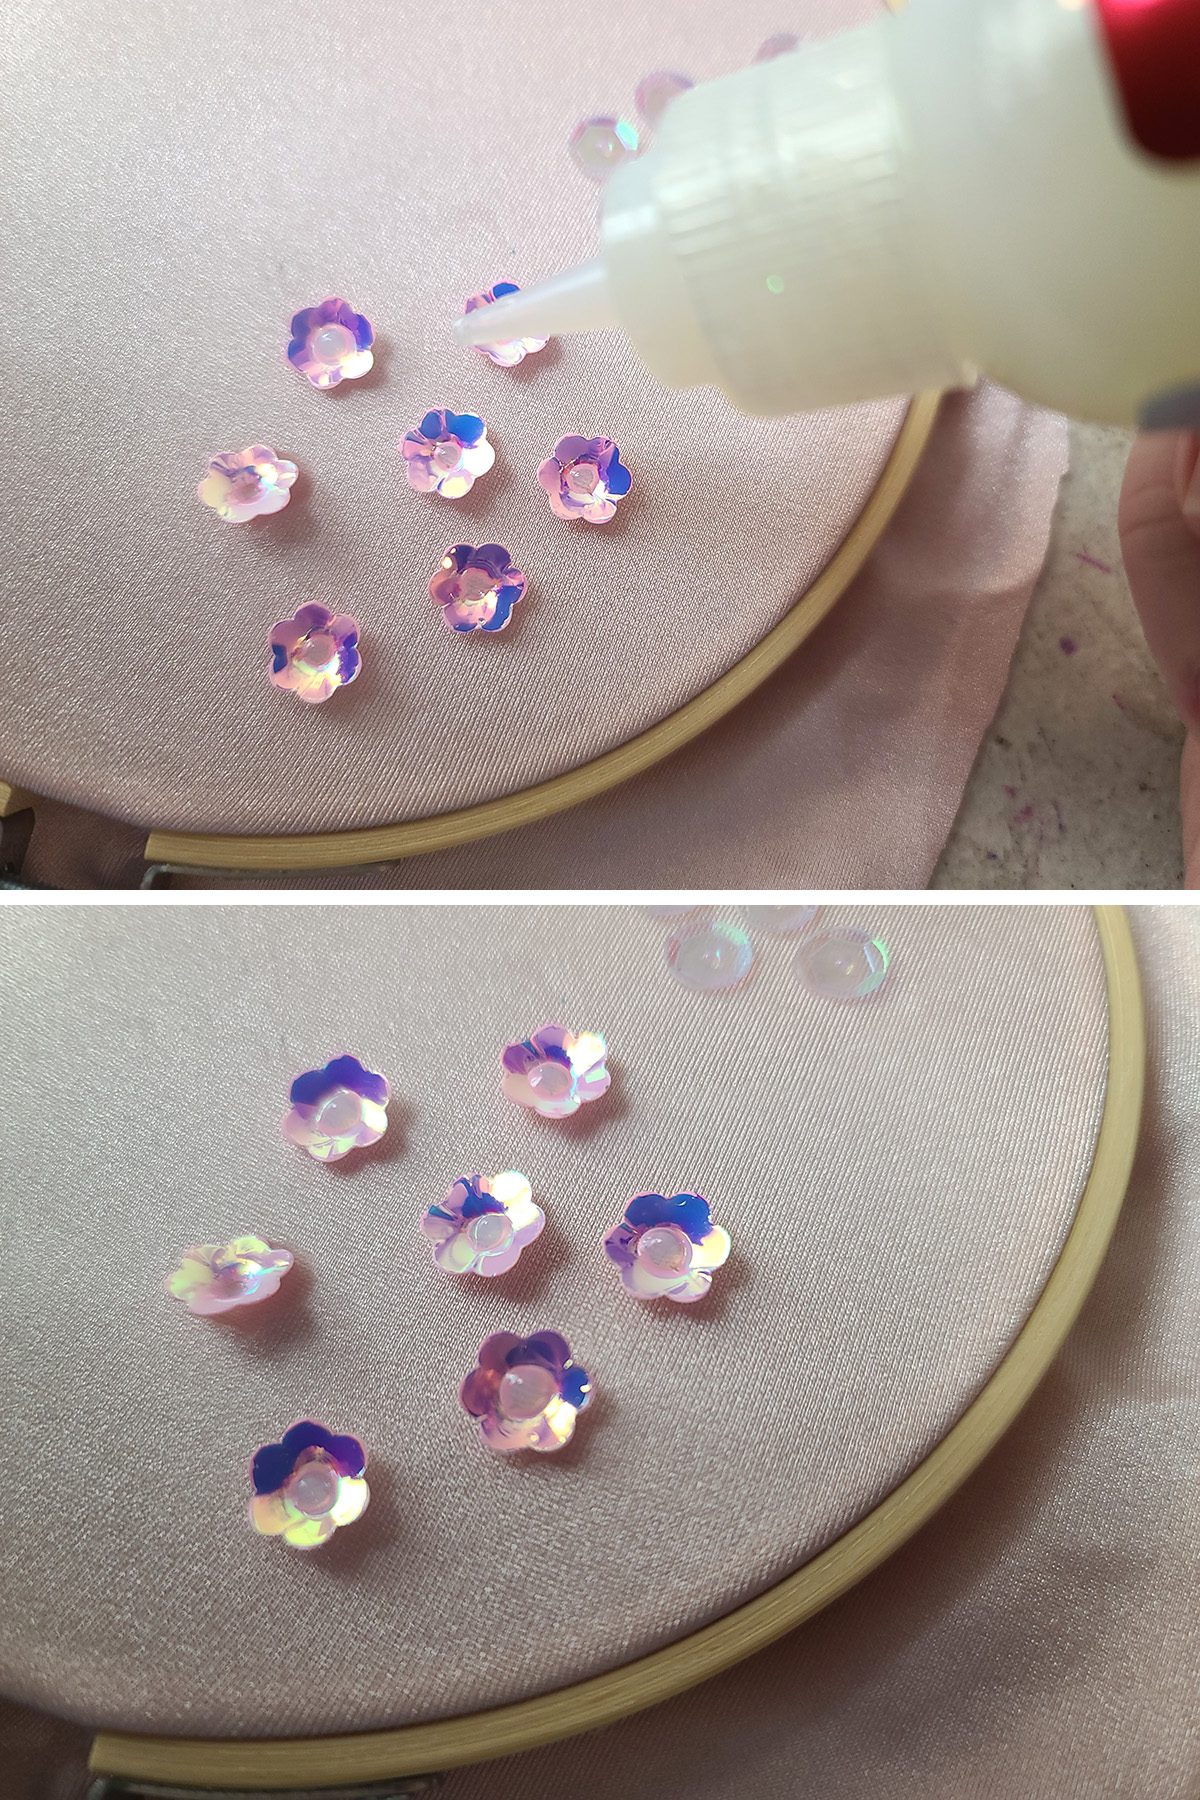 A two part compilation image showing pink iridescent sequins being glued to a piece of stretched light pink spandex, in an embroidery hoop.